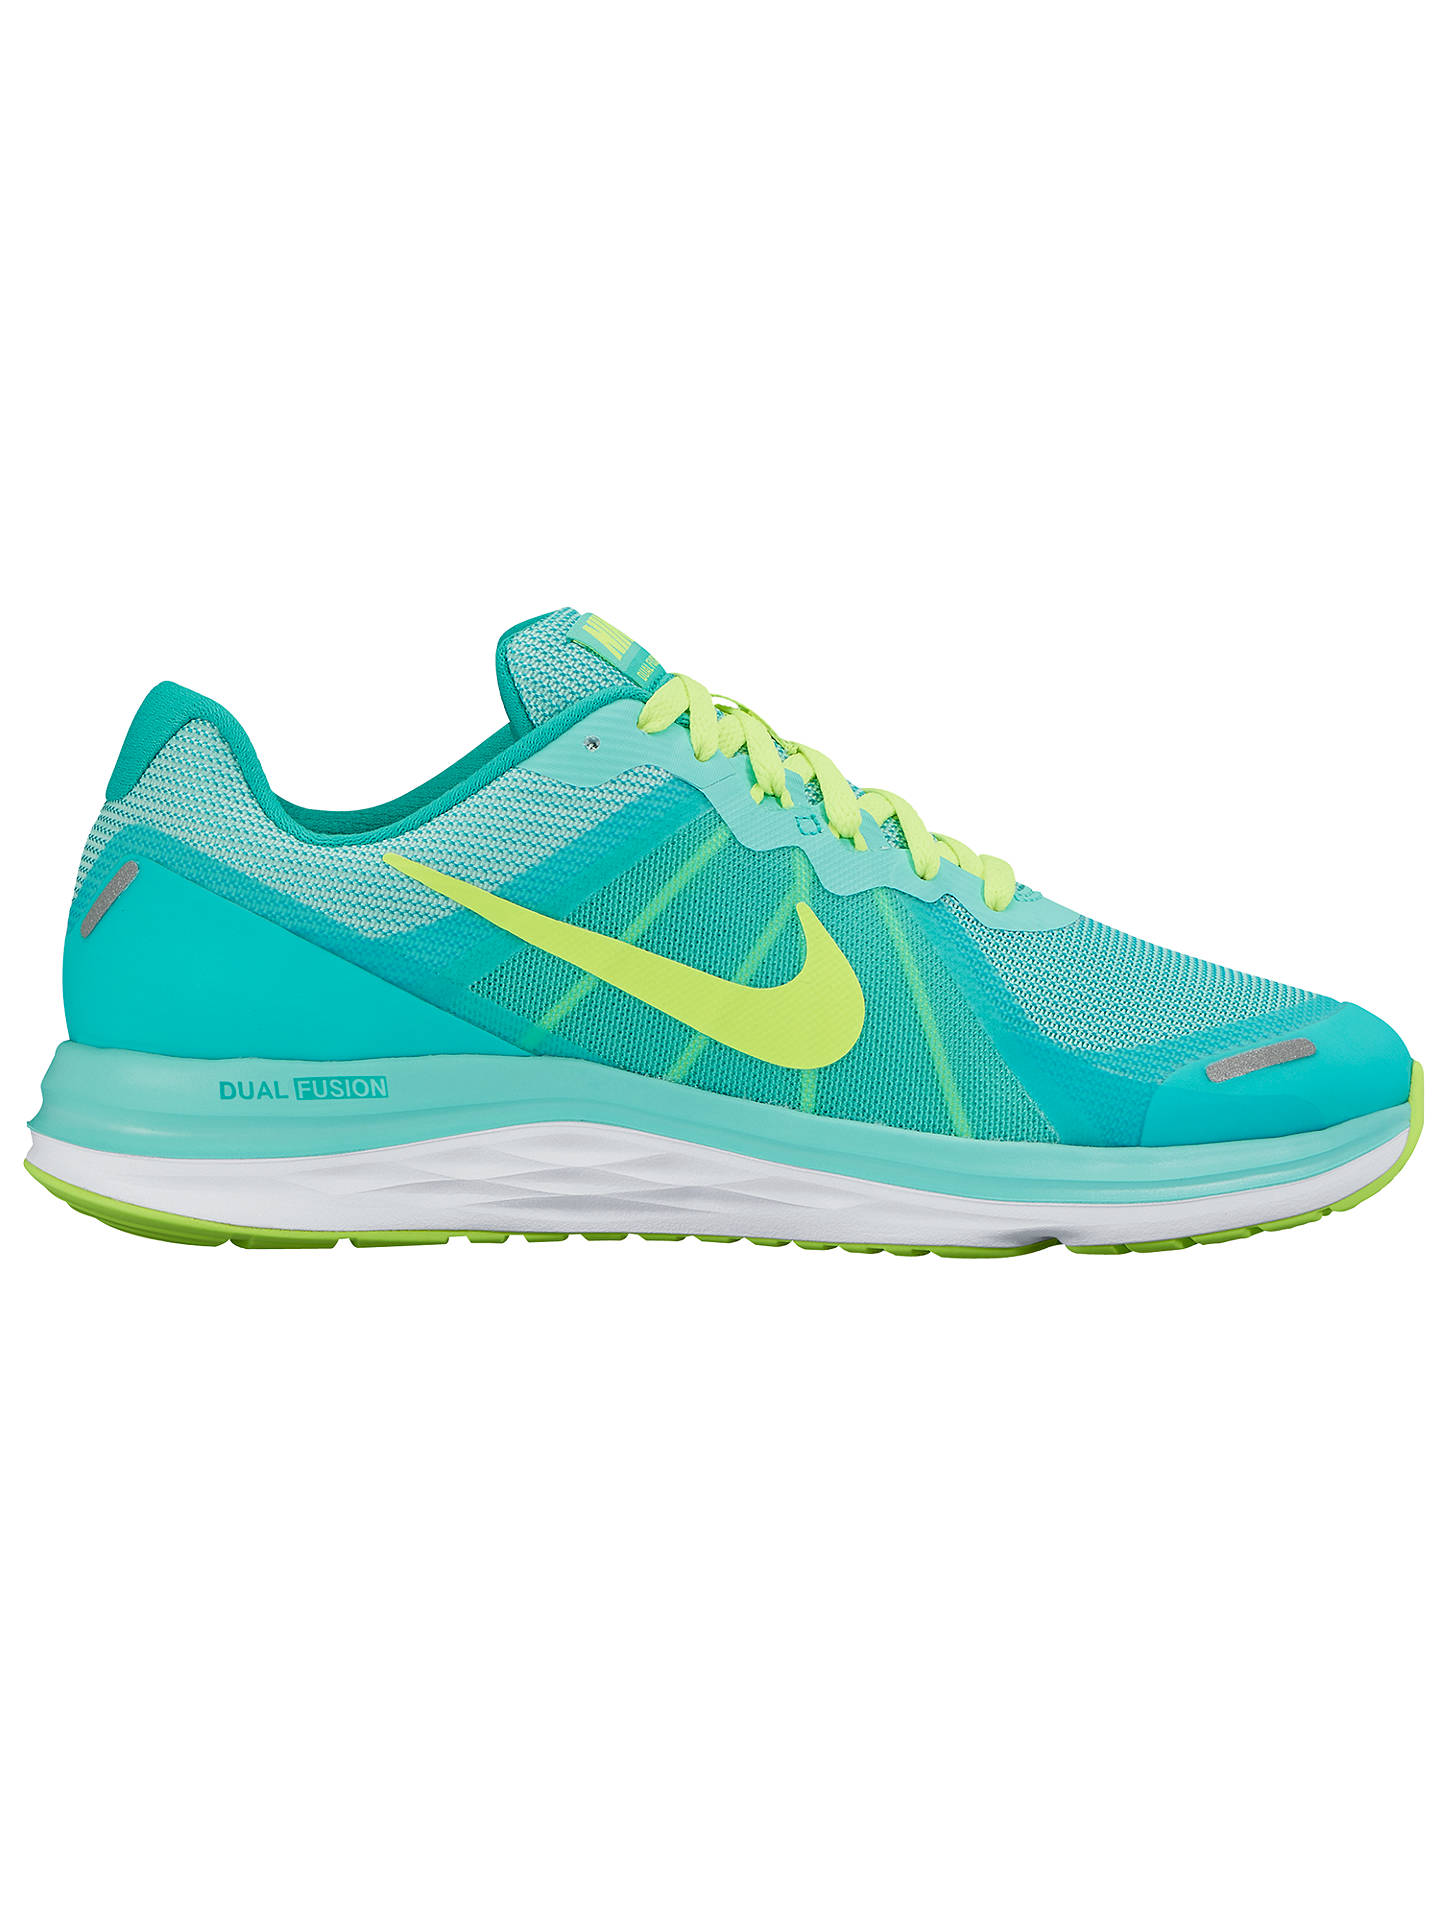 BuyNike Dual Fusion X 2 Women s Running Shoes 989af074f8